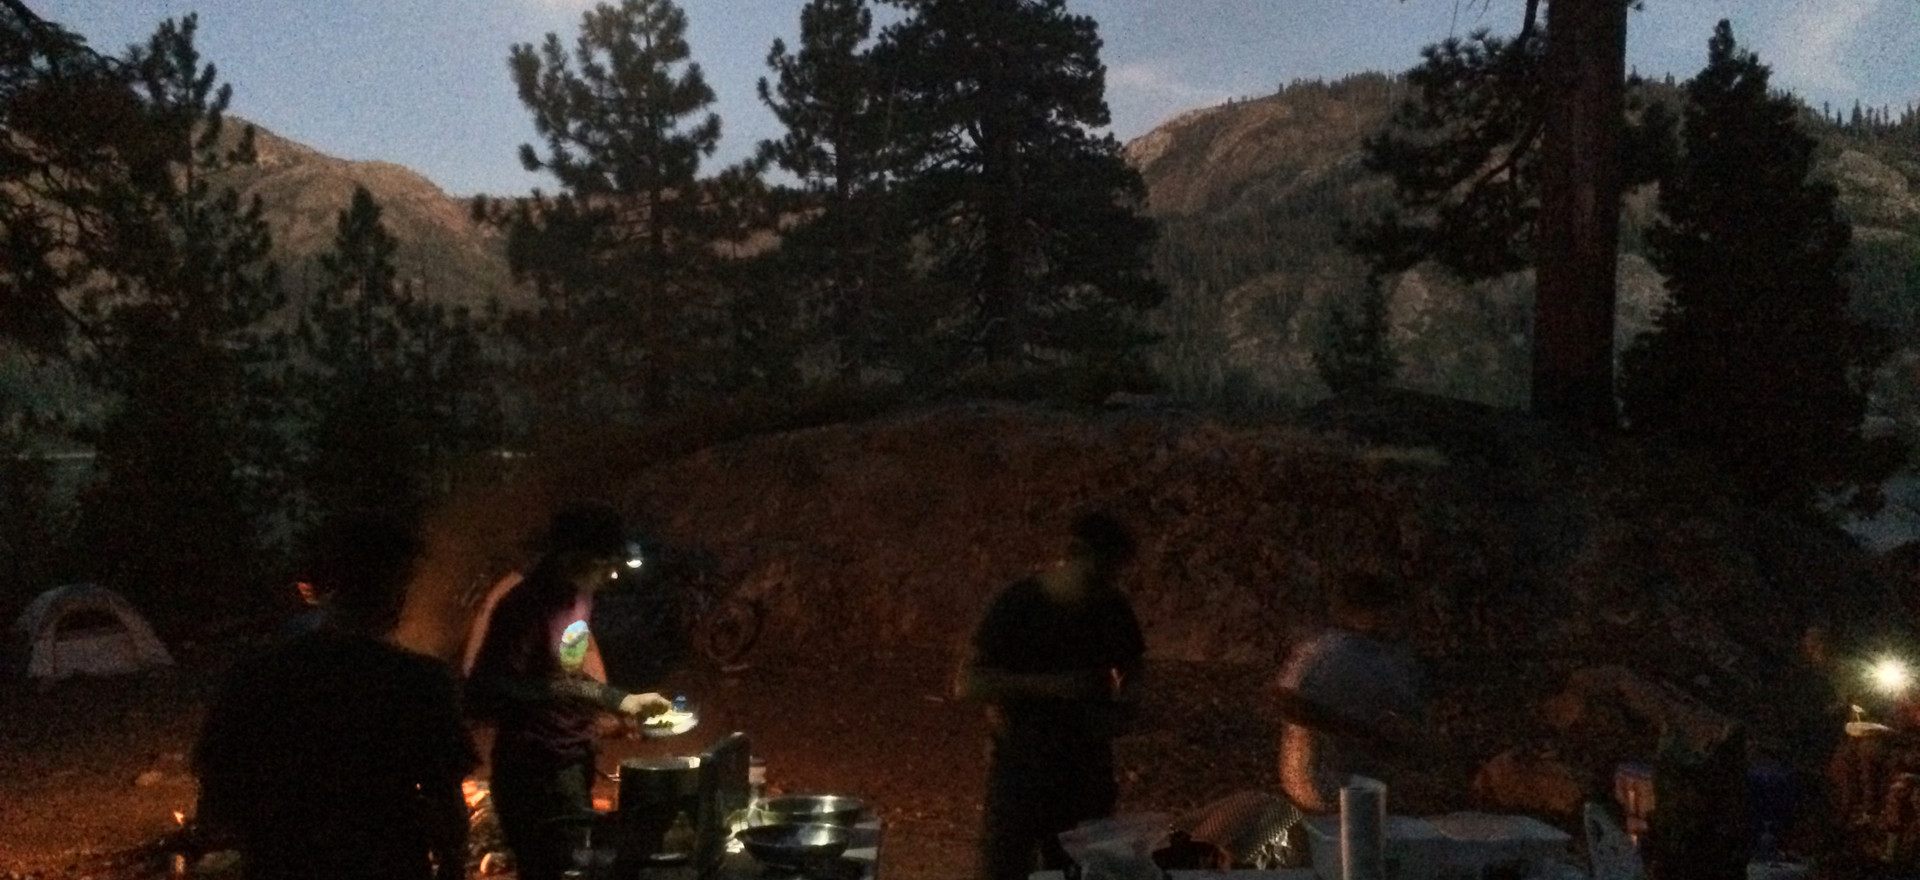 Sunset/moonrise over the camp.